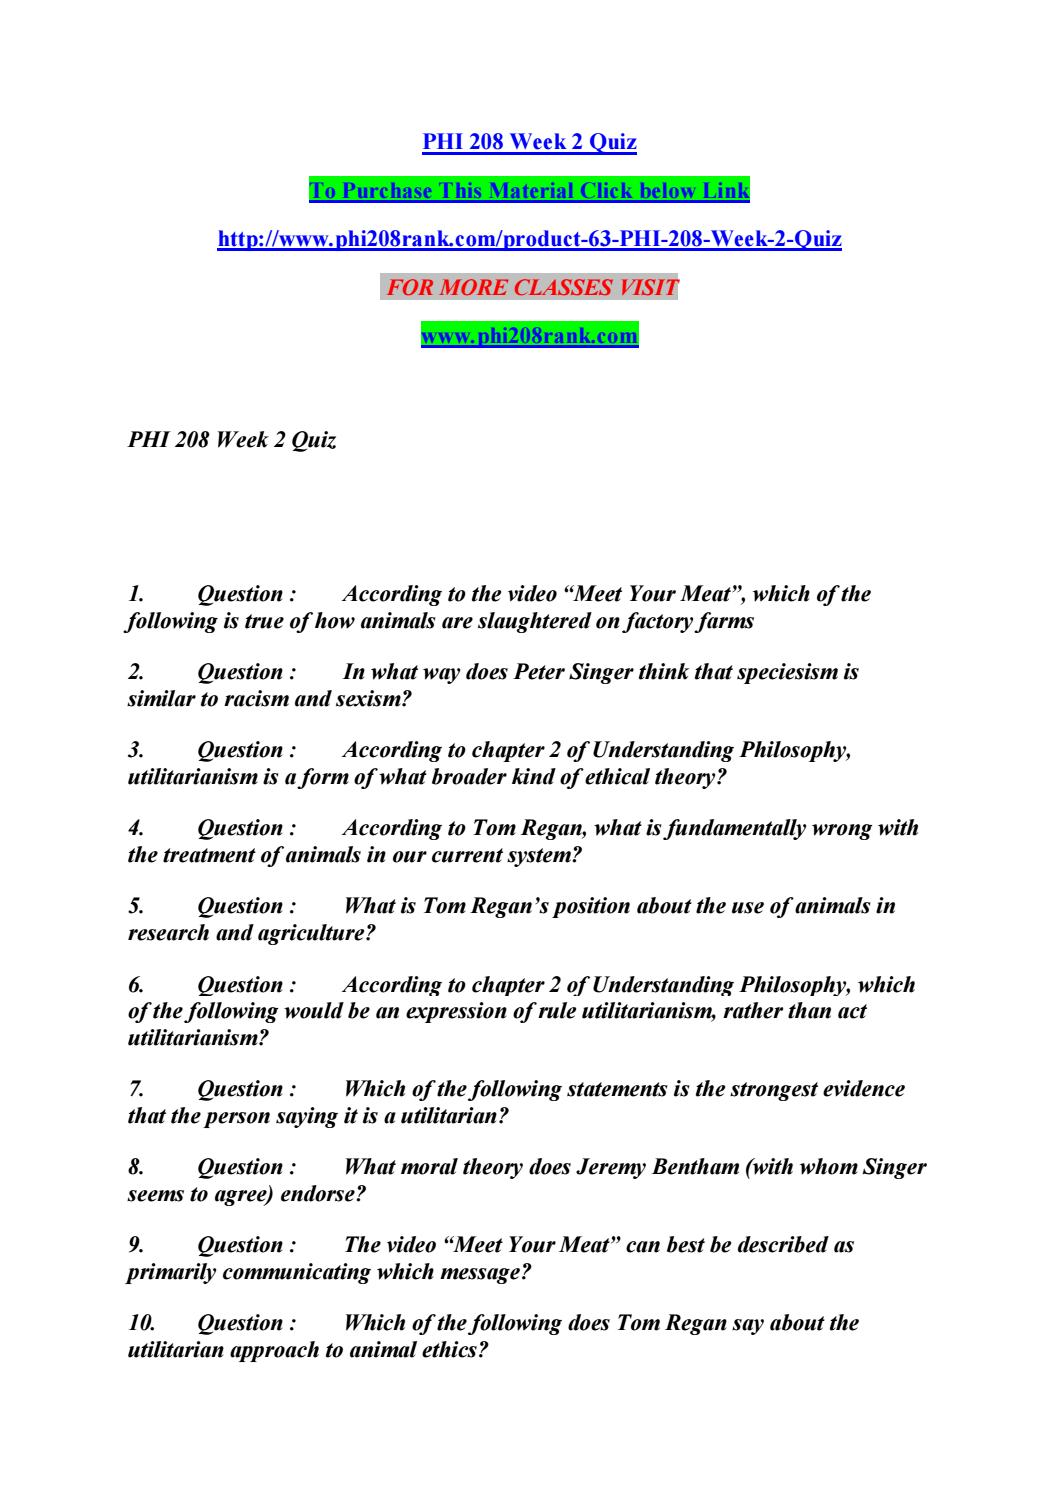 phi 208 peter singer Phi 208 week 2 quiz answers (new 2017) tom regan's view of animals is that: what is speciesism according to peter singer's account what is a key feature of utilitarianism according to the assigned texts.